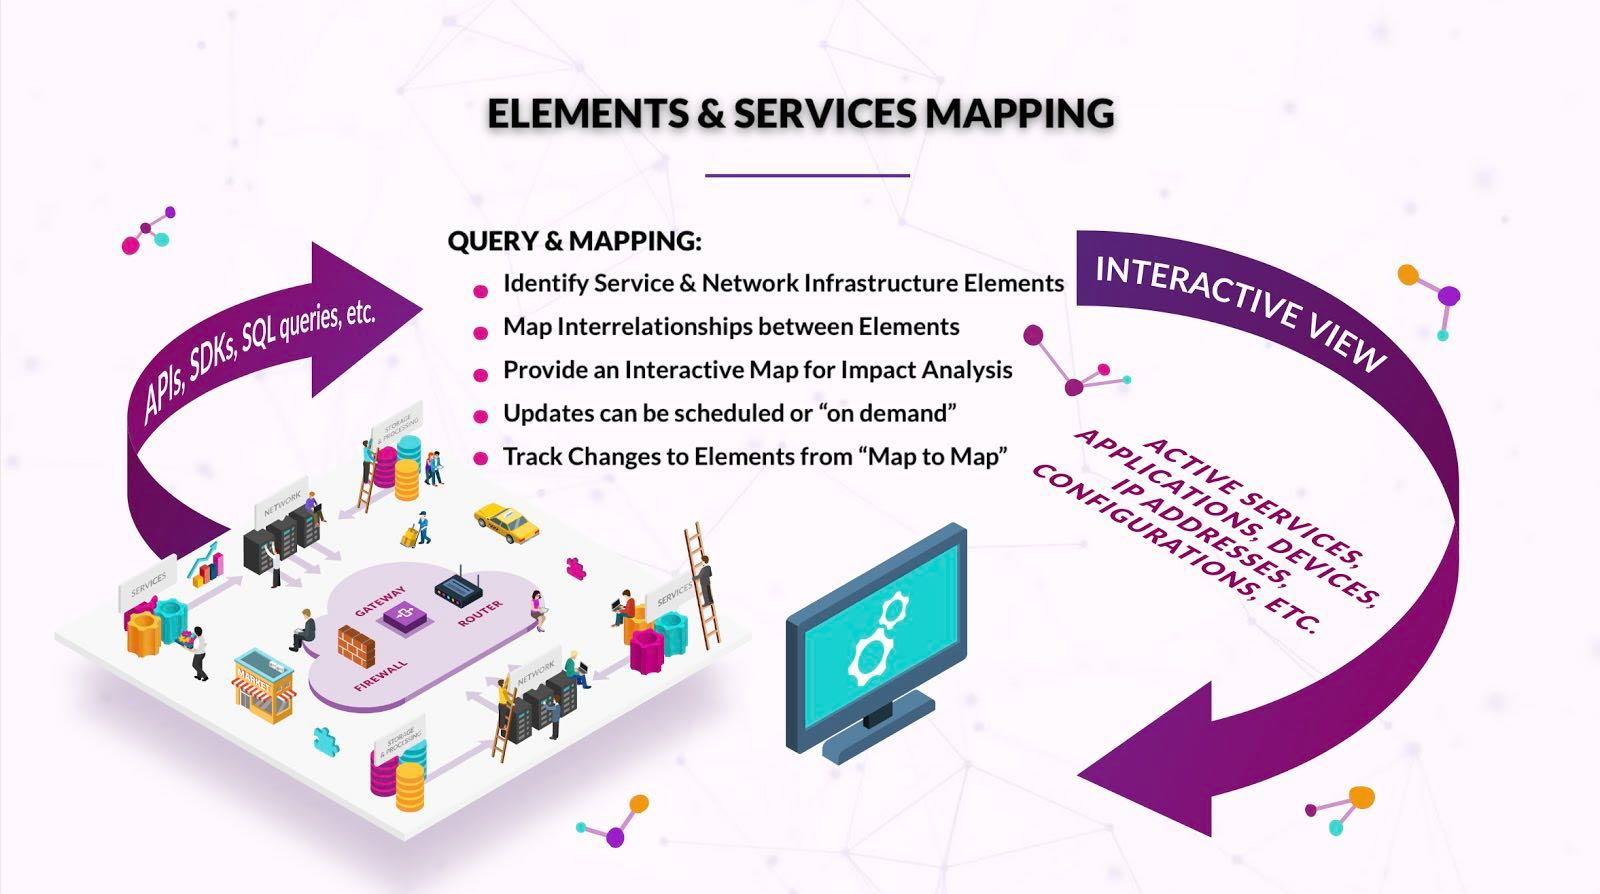 Elements and Services Mapping